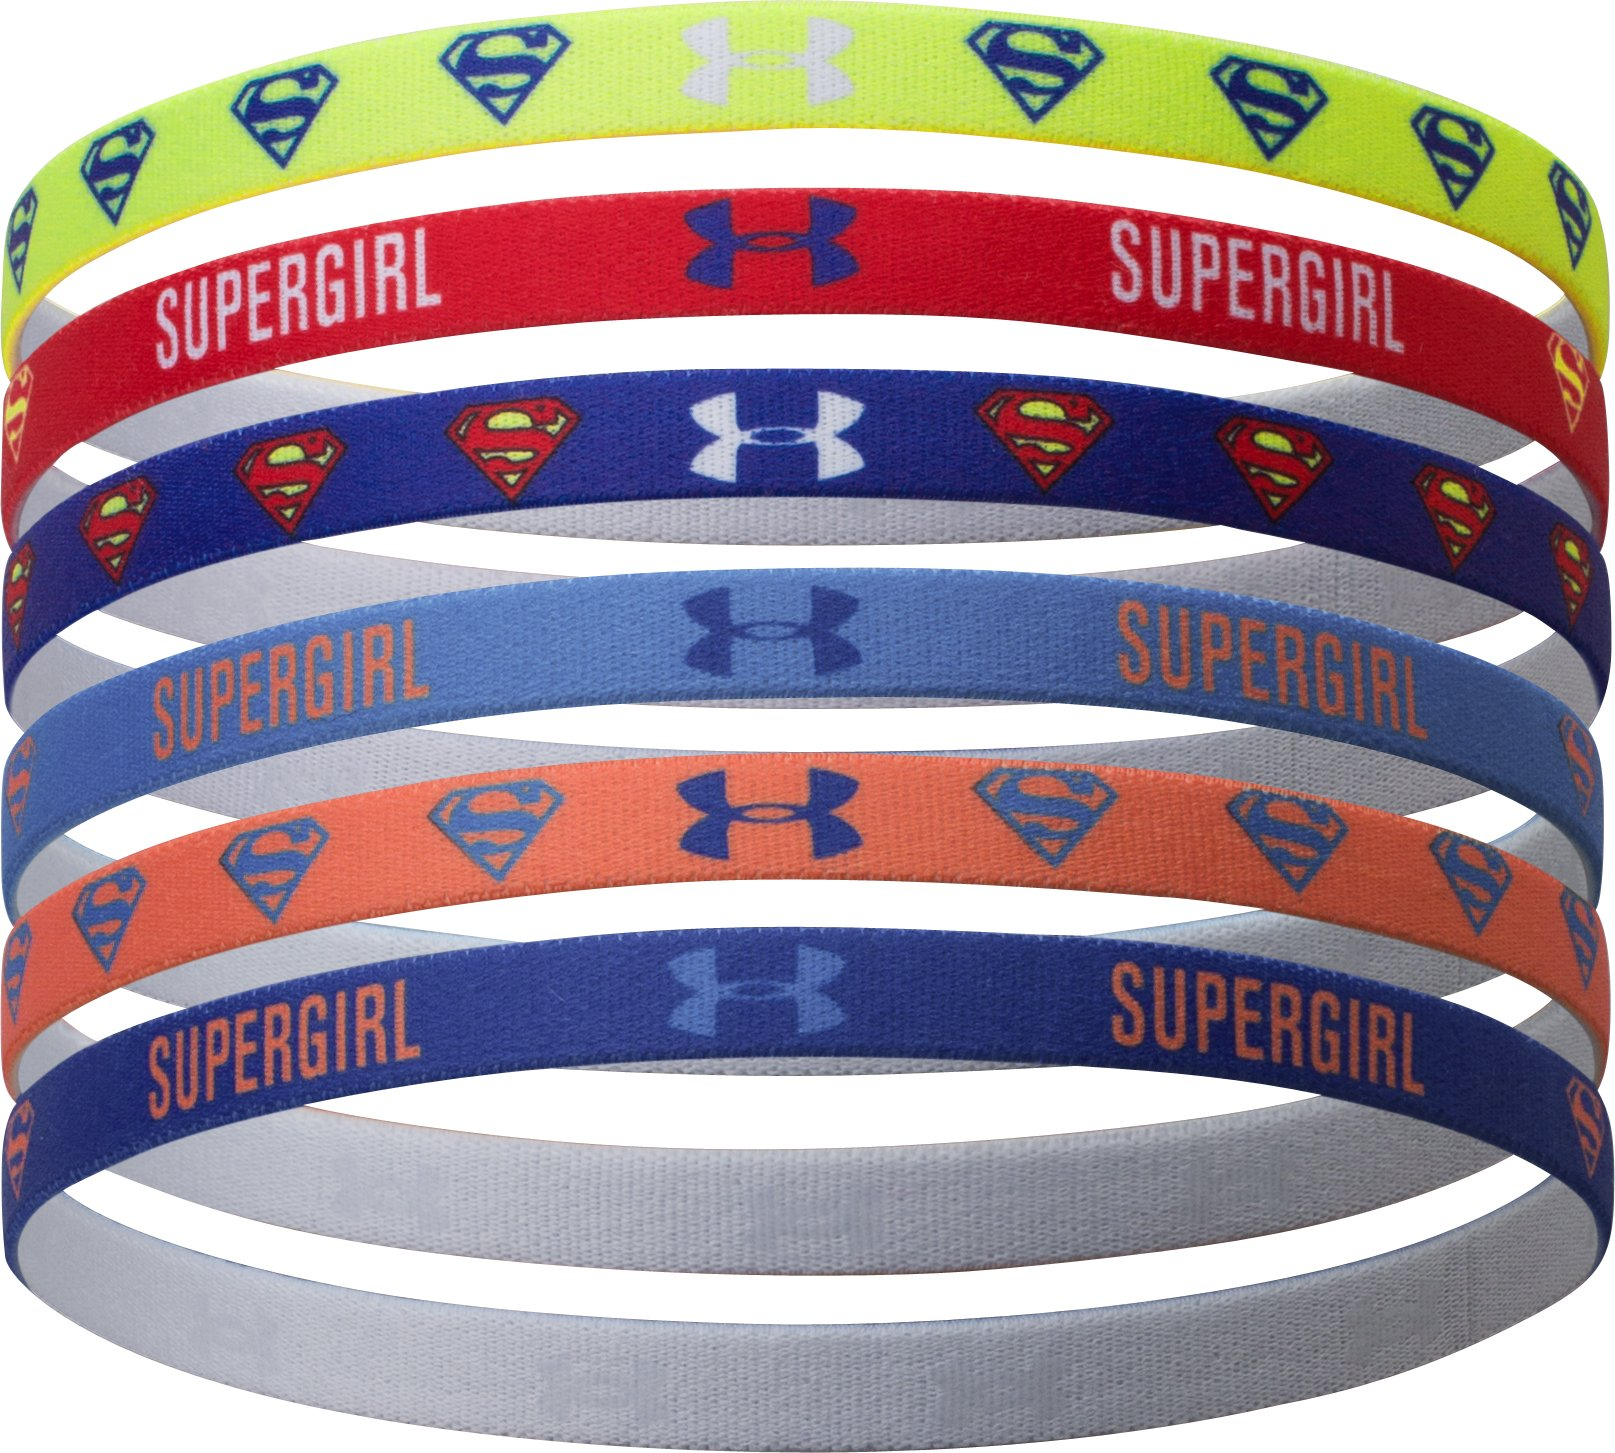 Women's Under Armour® Alter Ego Supergirl Mini Headbands, CITRUS BLAST